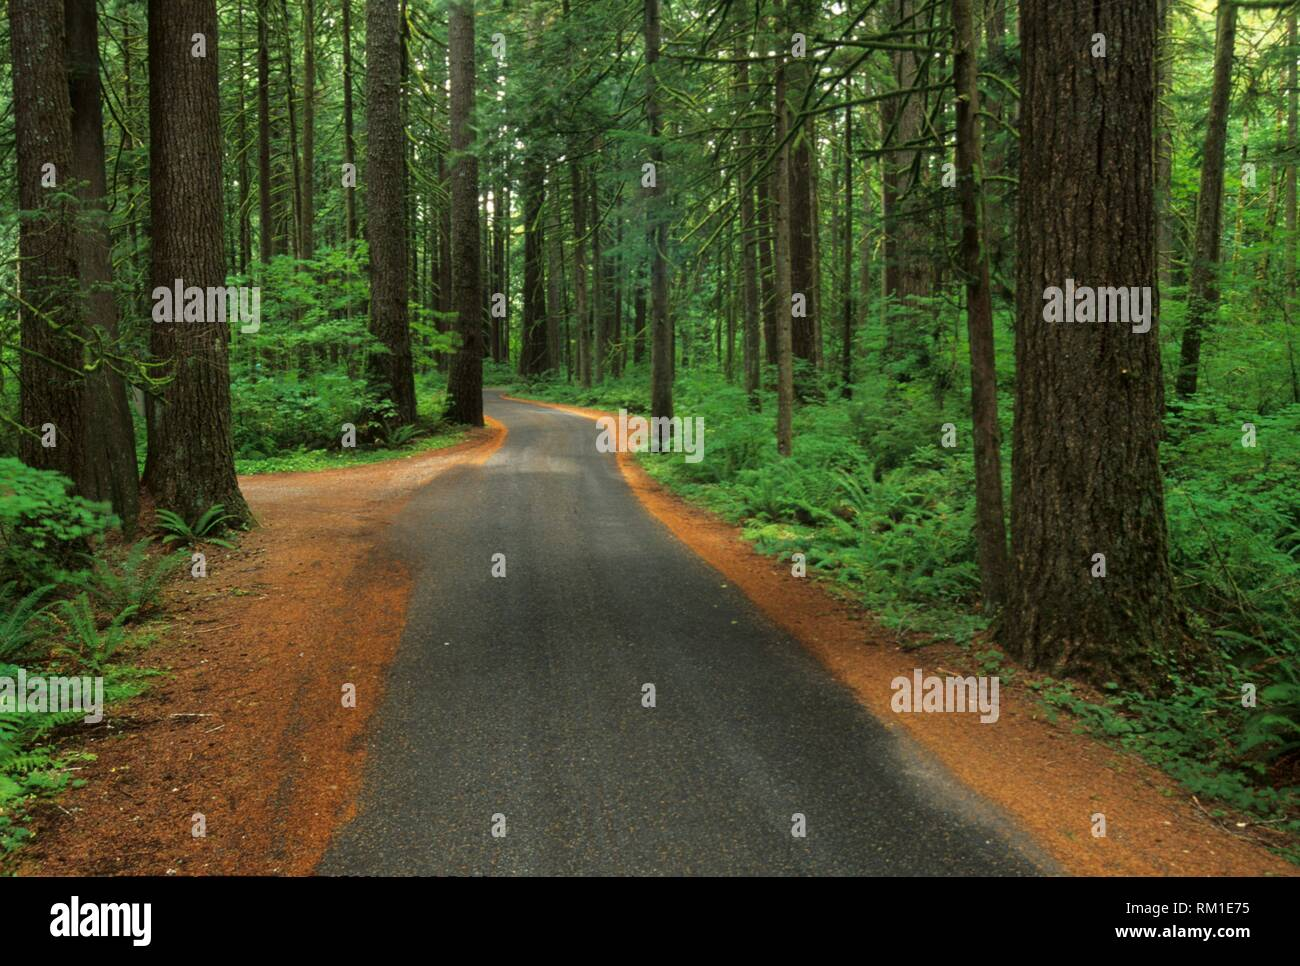 Park road through Ancient forest, Squire Creek County Park, Washington. - Stock Image